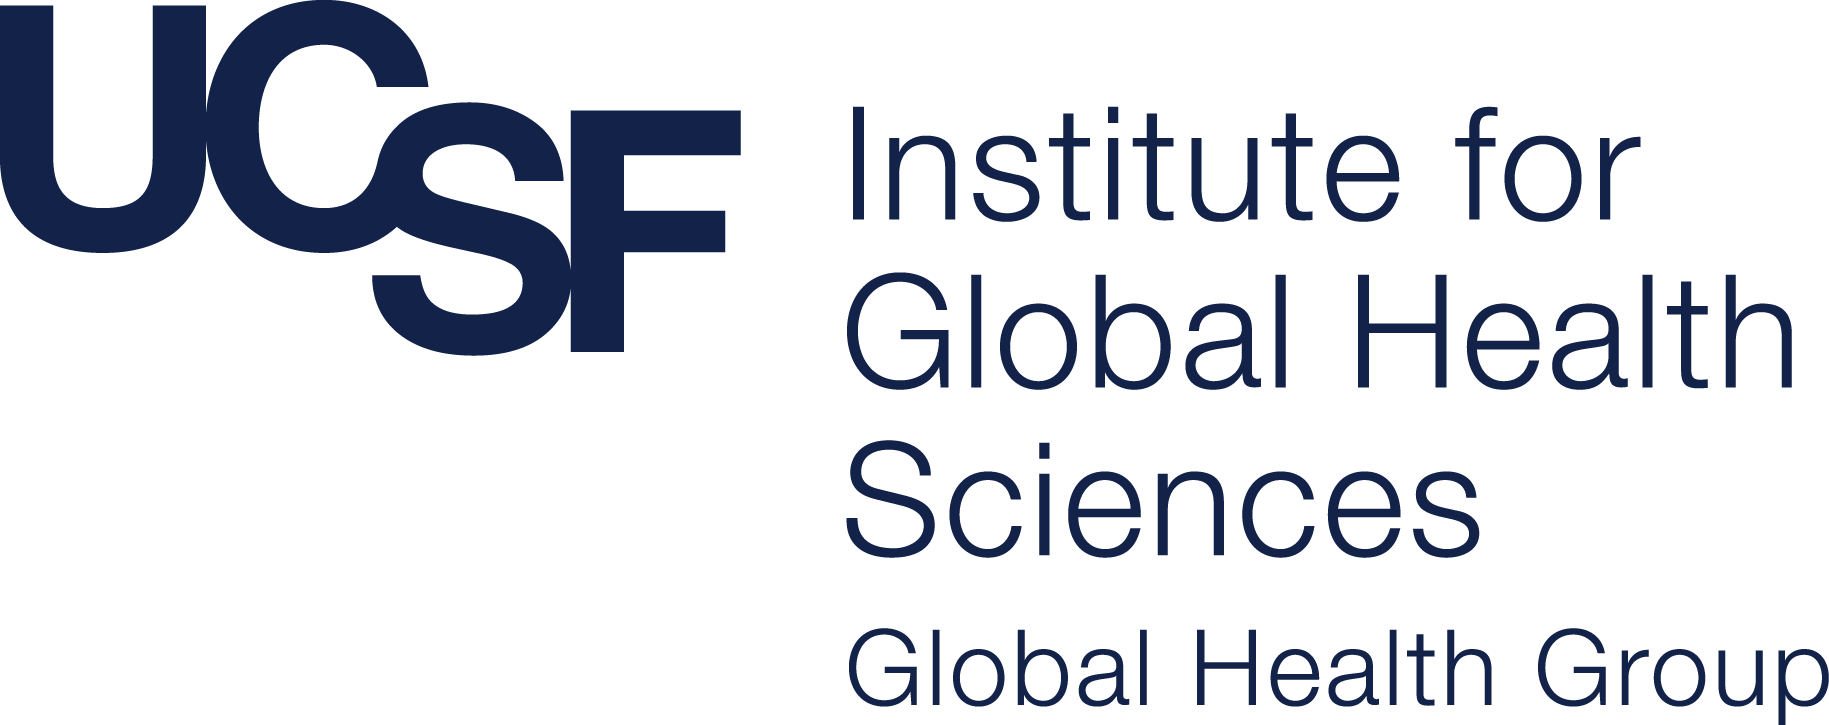 UCSF_sublogo_InstituteGlobalHealthSciences_GlobalHealthGroup_logo_navy_RGB.png